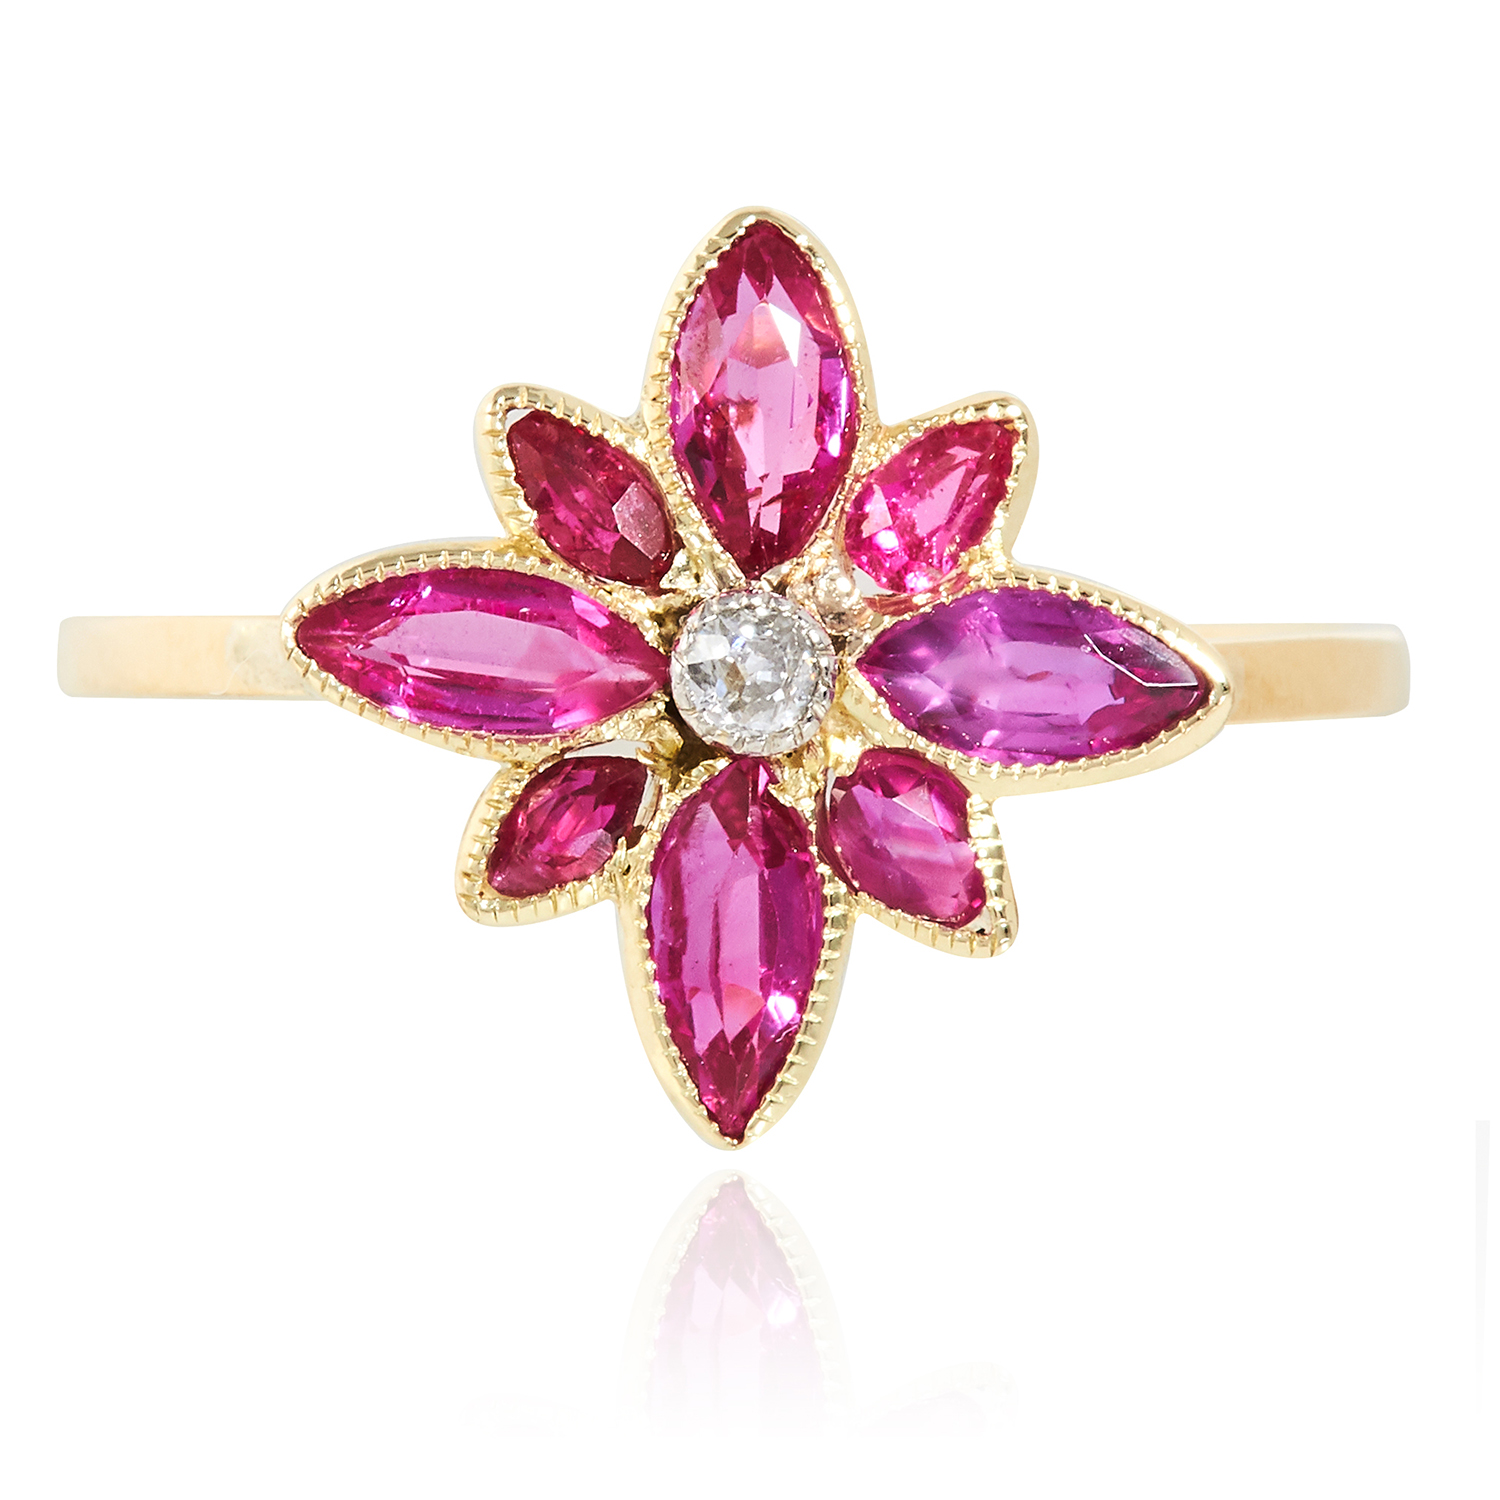 Los 34 - A RUBY AND DIAMOND RING in high carat yellow gold, set with a floral cluster of rubies and diamonds,